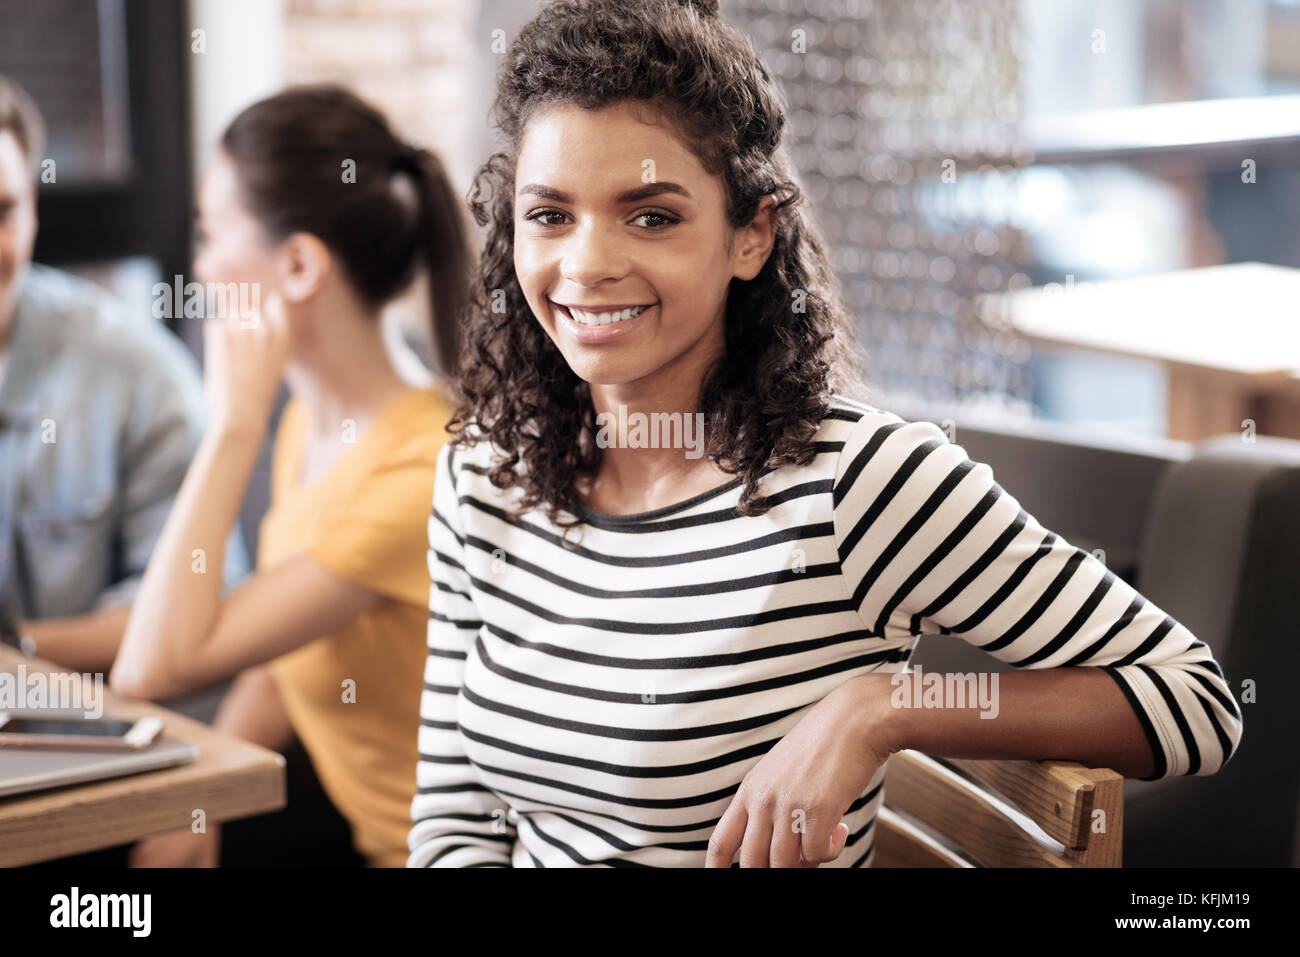 Attractive alert curly-haired dark-eyed girl smiling - Stock Image